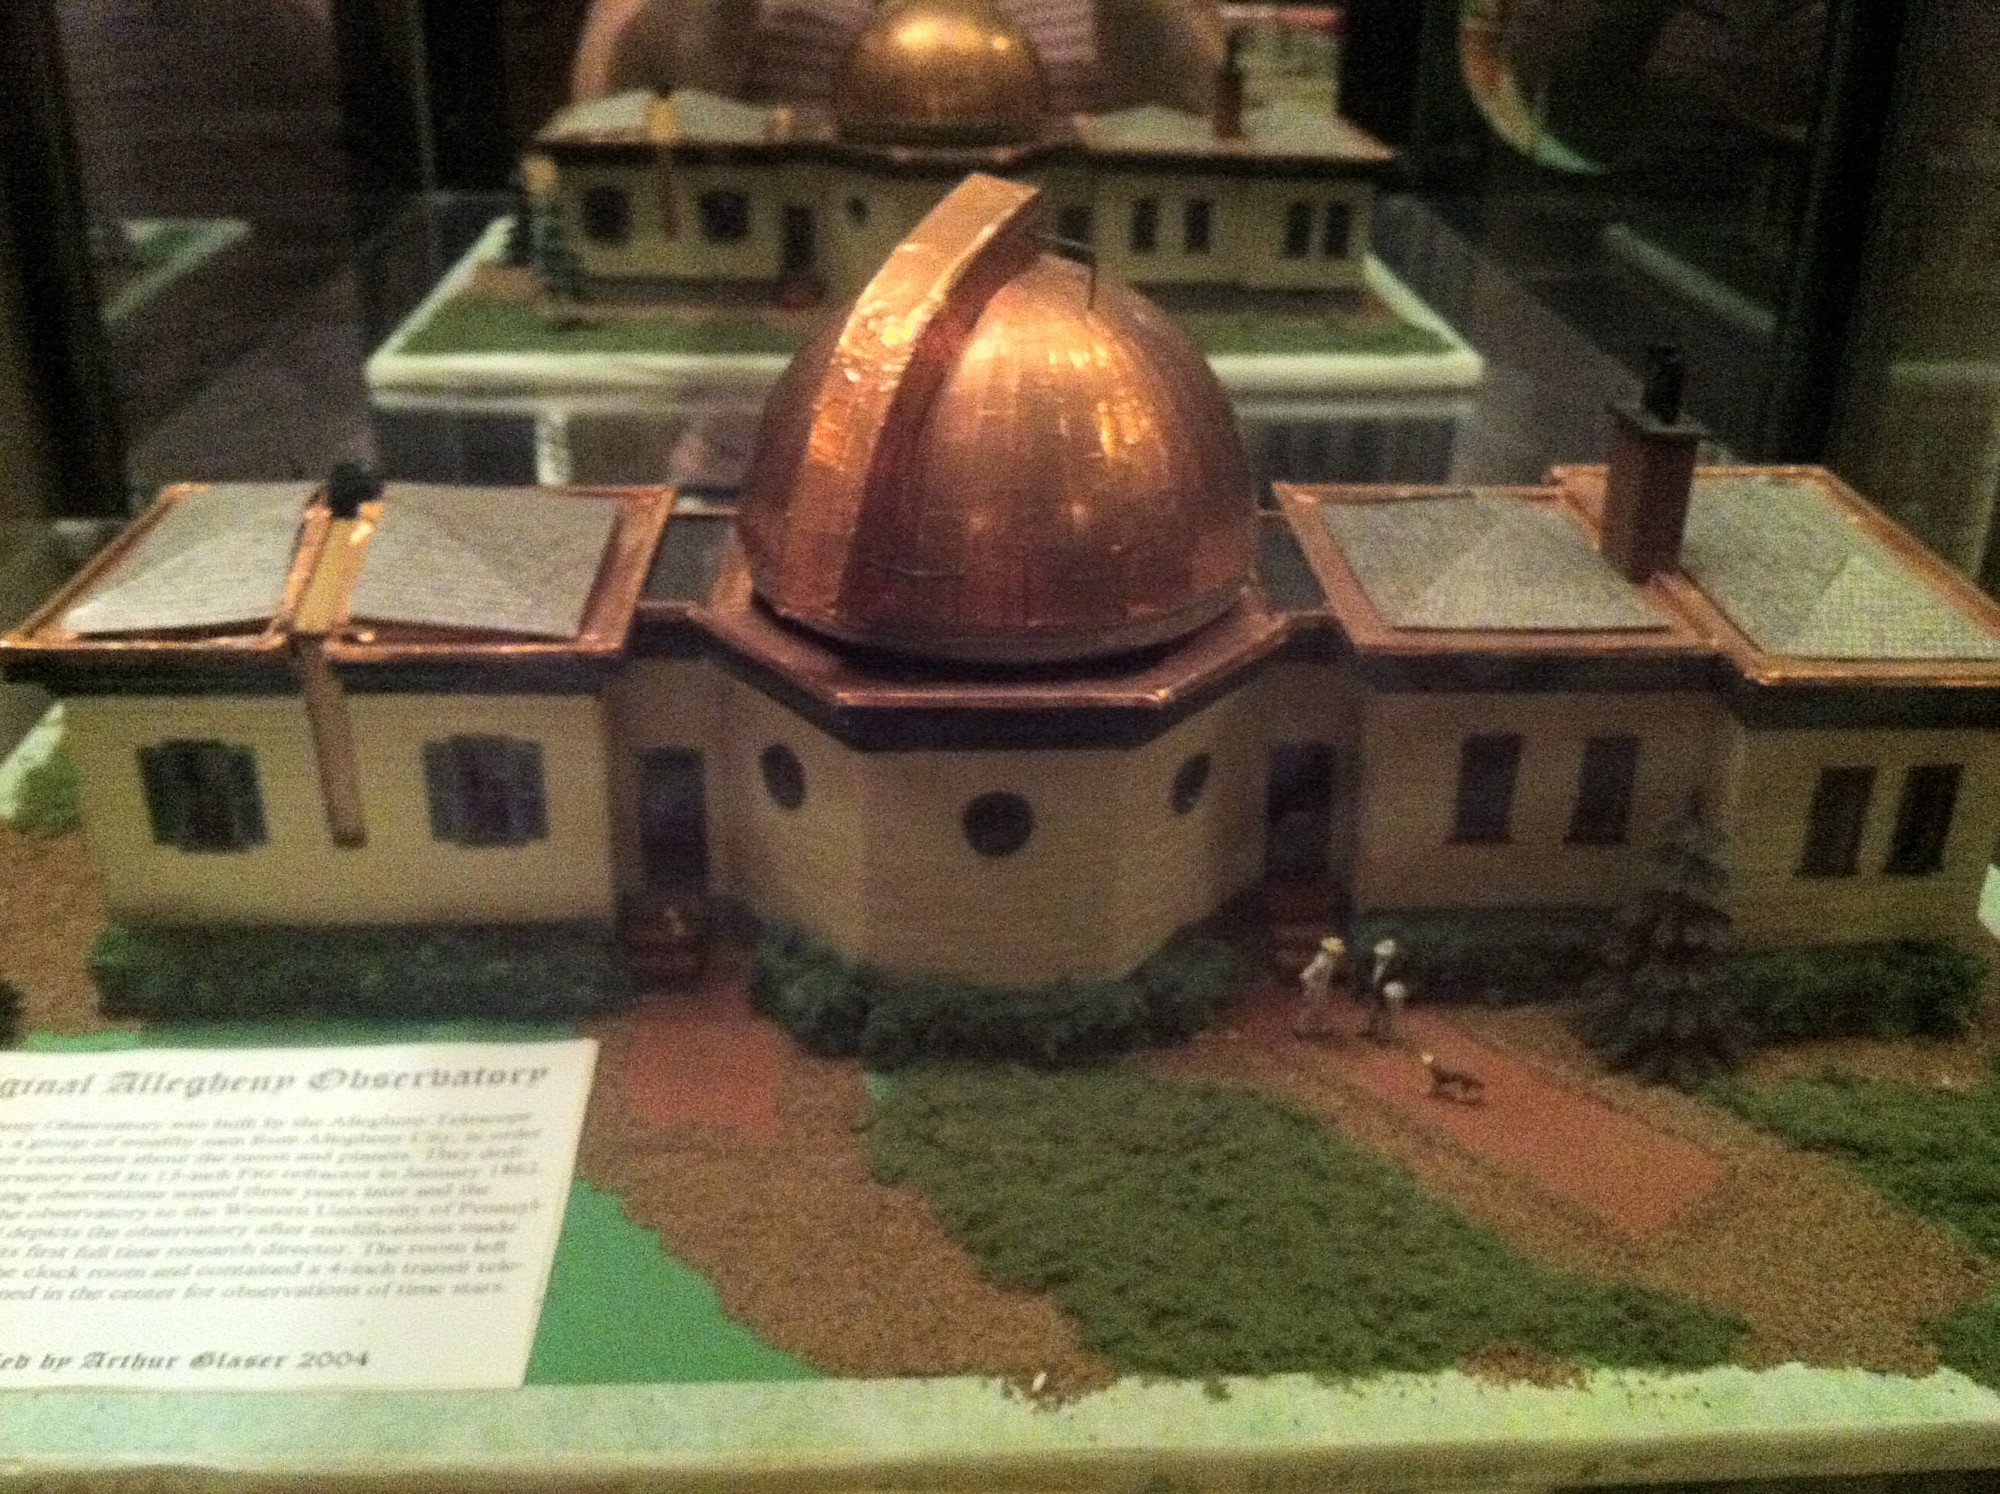 Model of the observatory